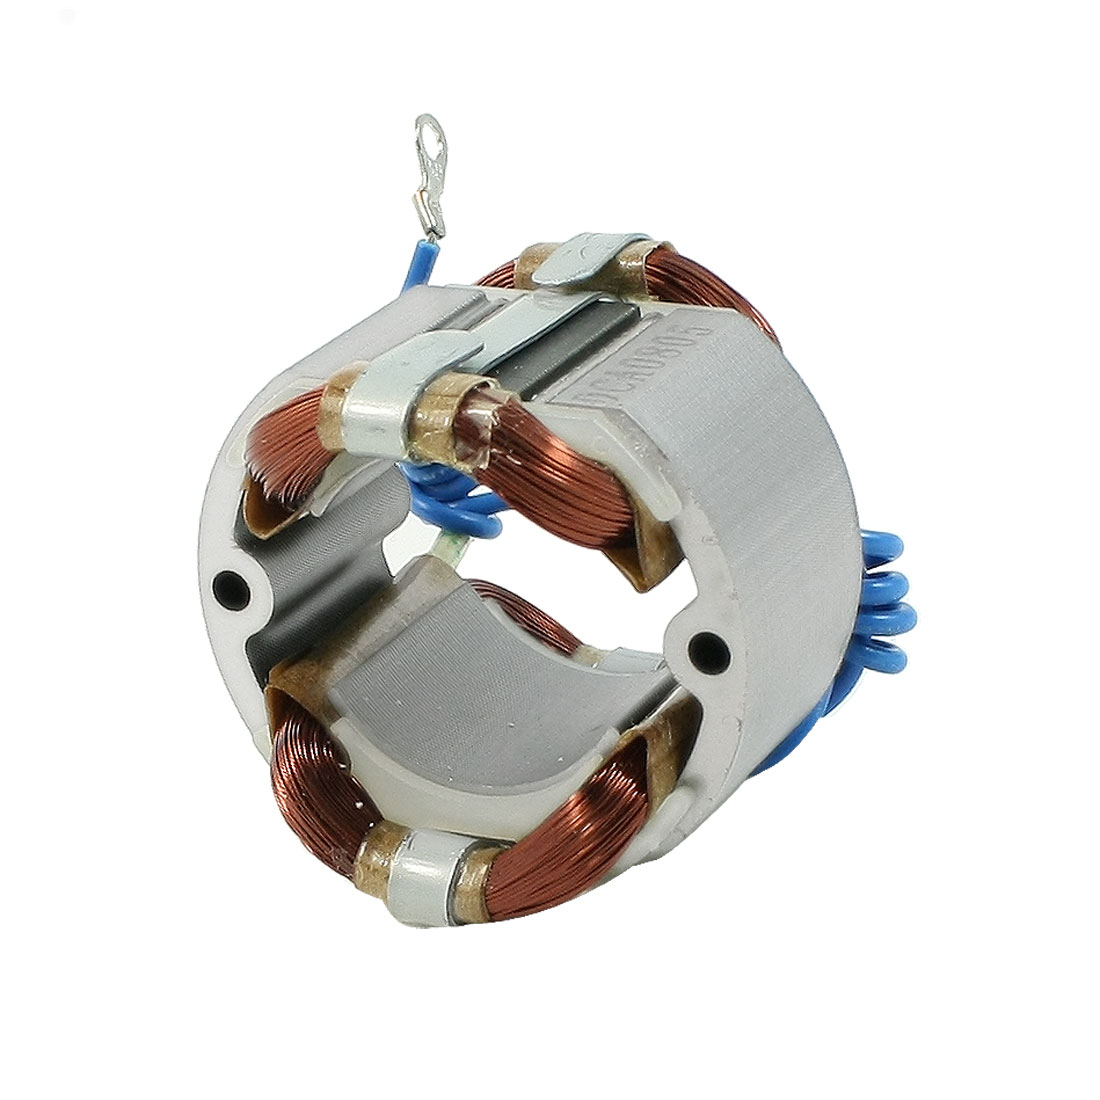 AC220V Stainless Steel Shell 4 Cables Electric Hammer Stator for Makita GV6000